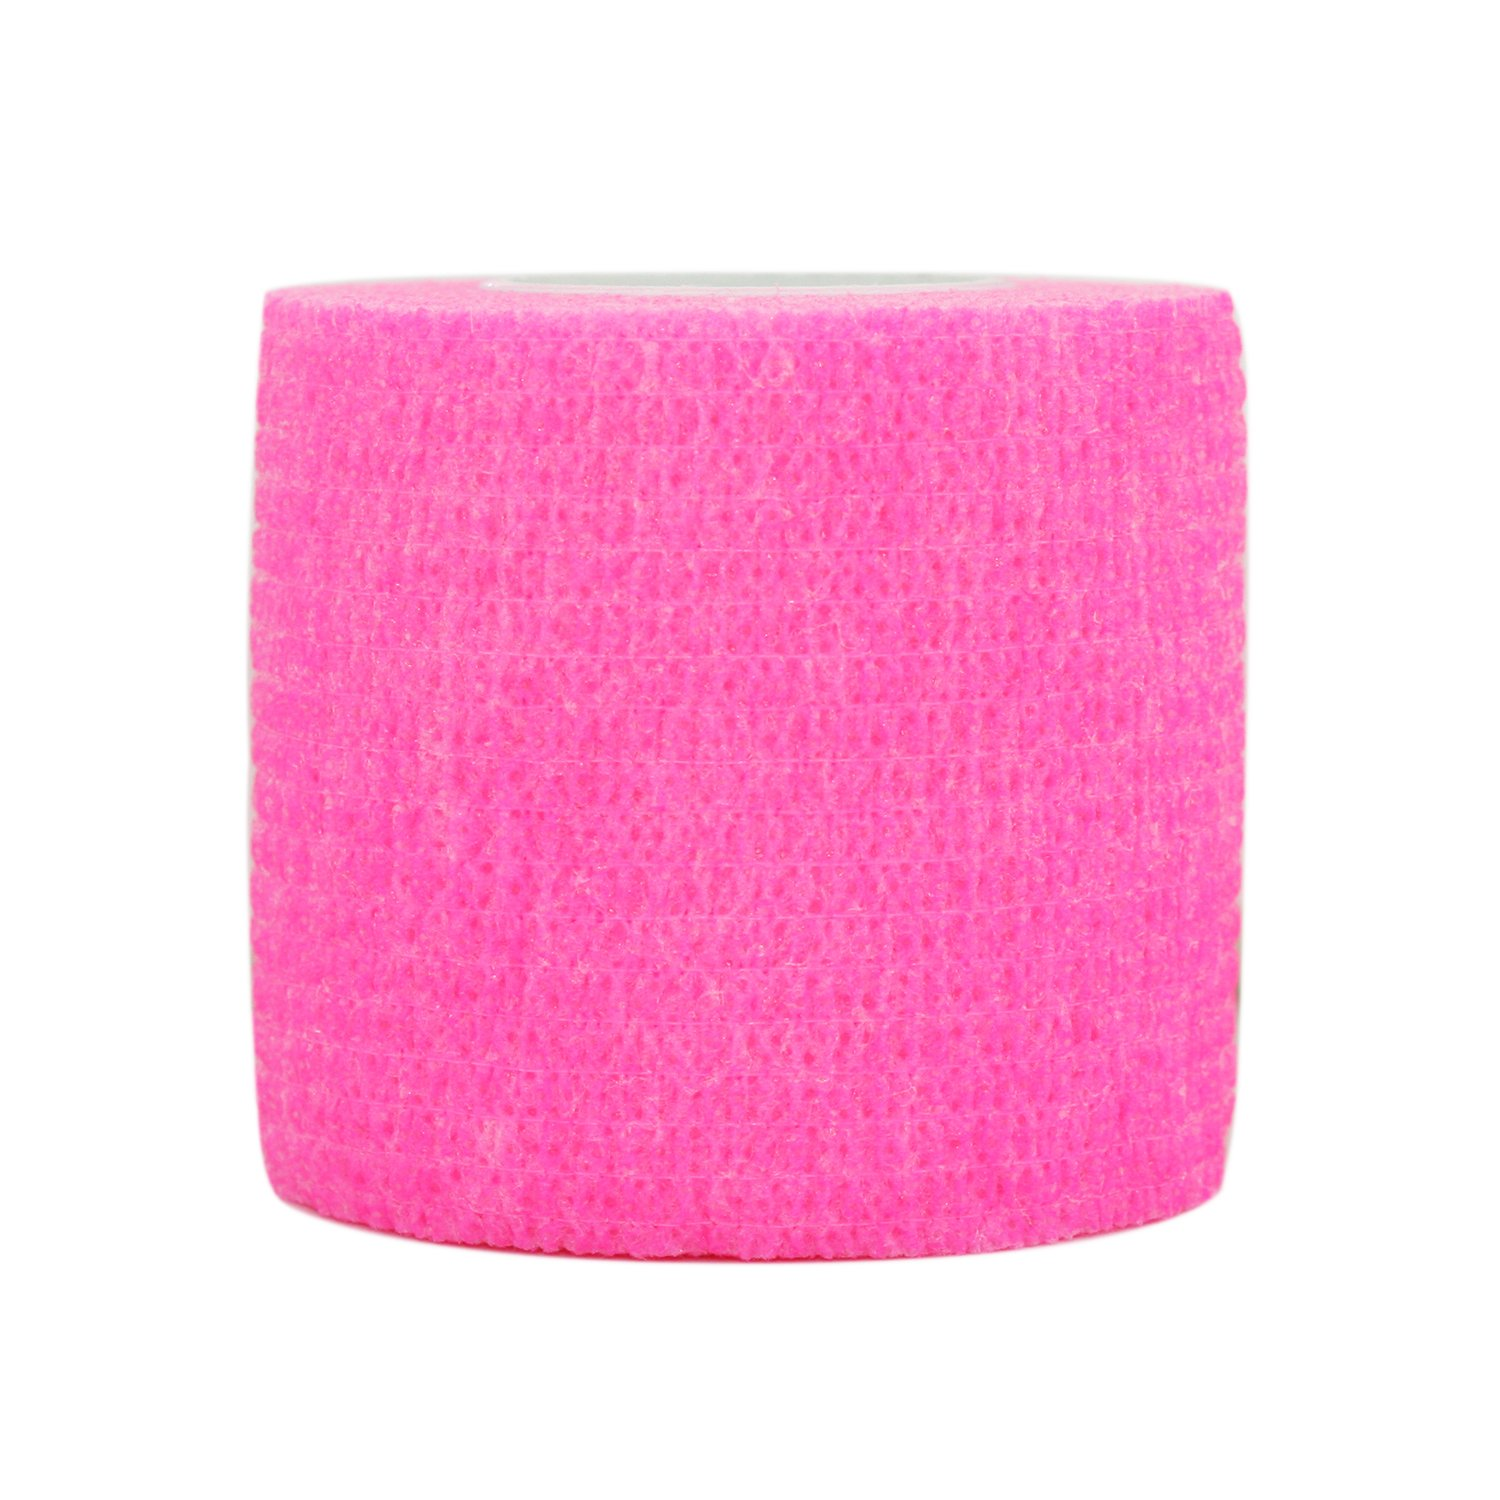 COMOmed Self Adherent Cohesive Bandage FDA Approved 2''x5 Yards First Aid Ace Bandages Stretch Sport Athletic Wrap Vet Tape for Wrist Ankle Sprain and Swelling,Hot Pink(12 rolls)